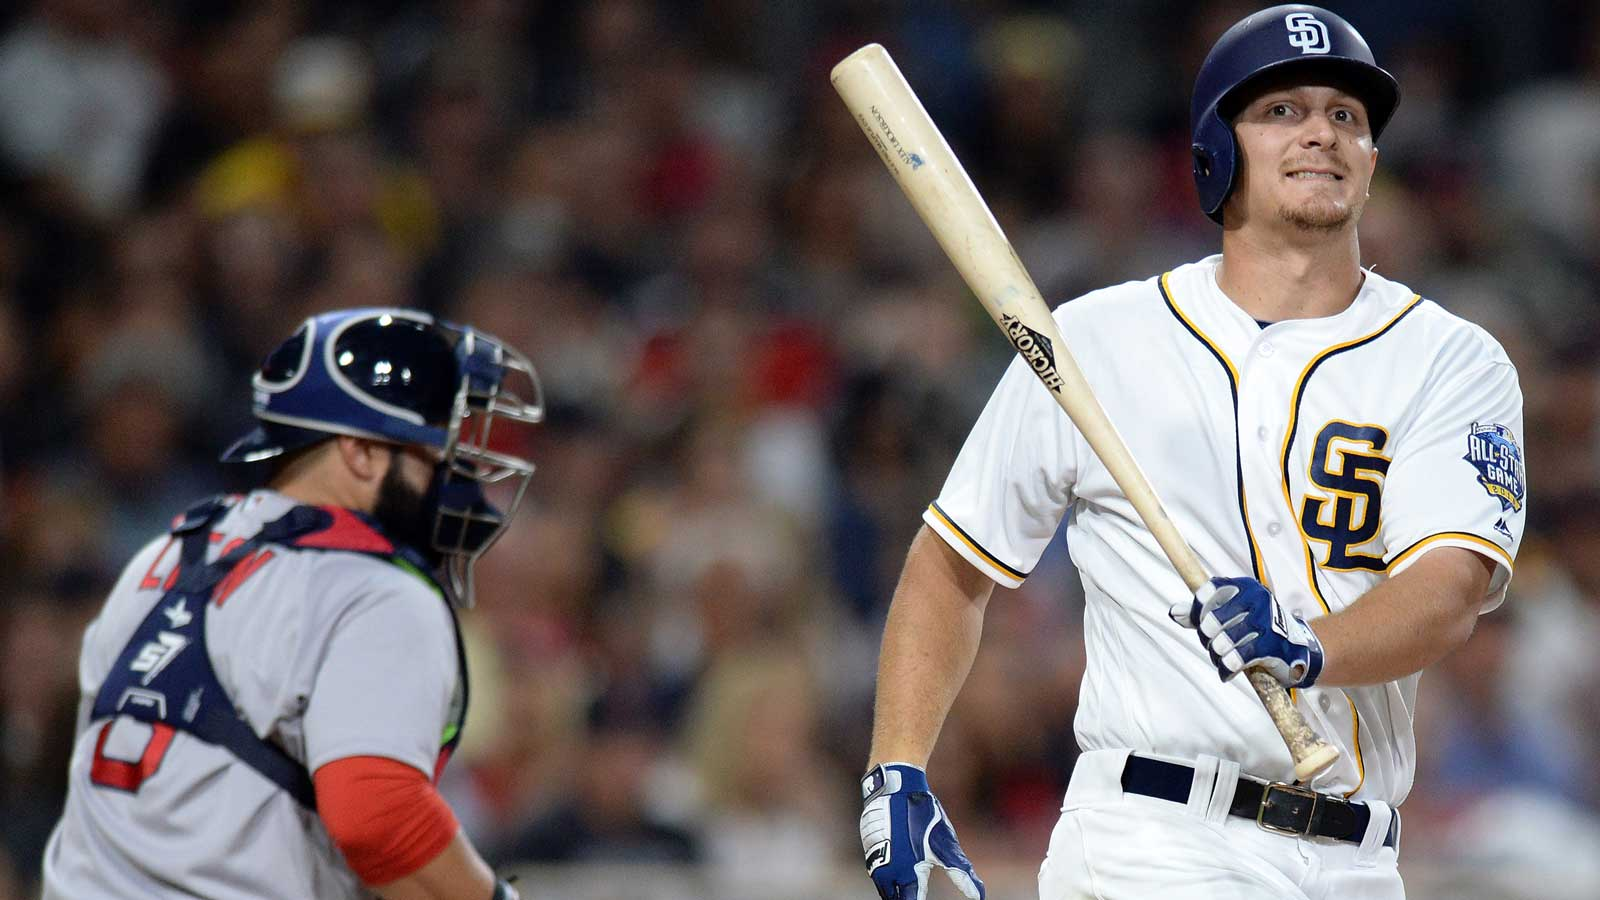 Clemens again falters as the Padres fall to Red Sox 5-1